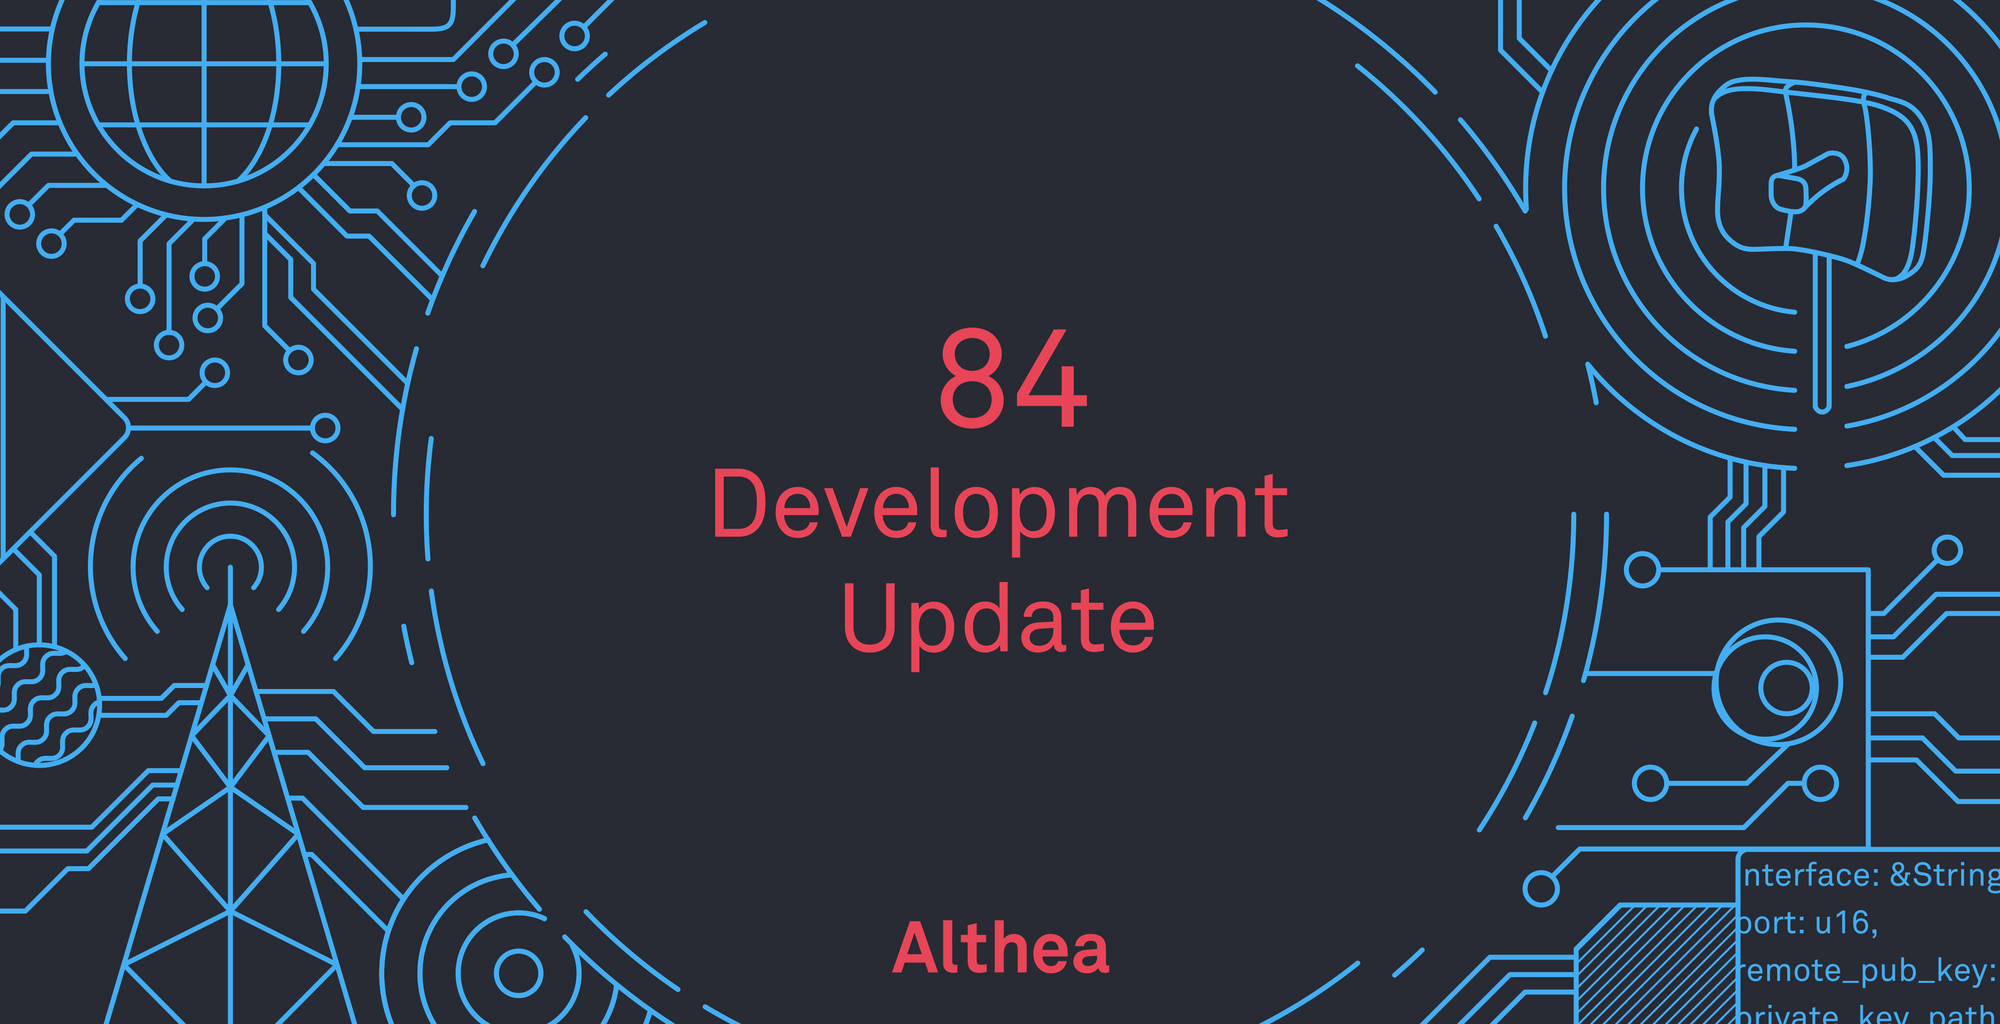 Althea Development Update #84: Operator tools, Peggy developments, and EIP-55 support